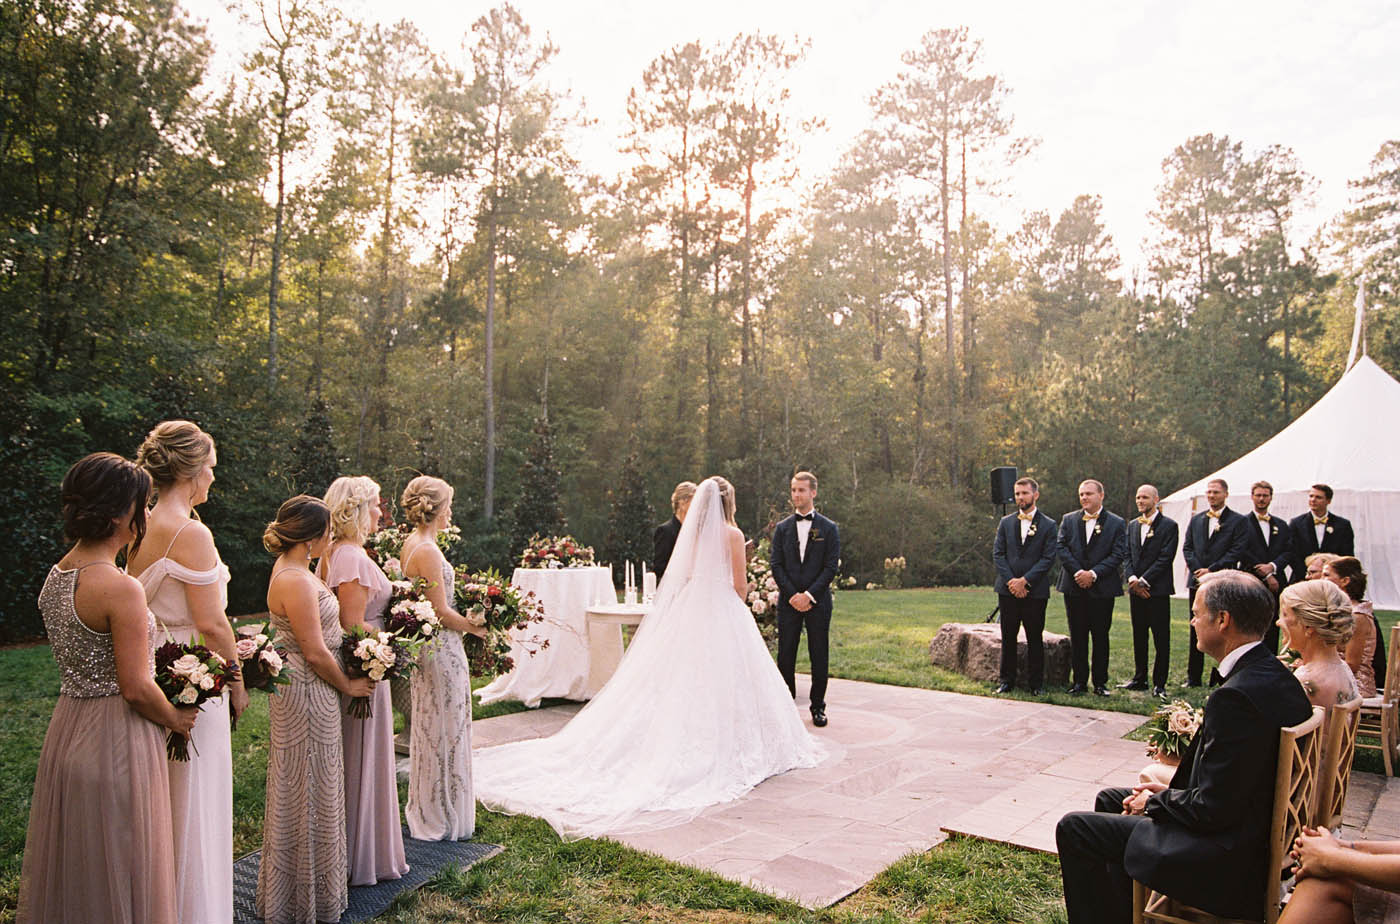 Private-estate-wedding-North-Carolina-33.jpg